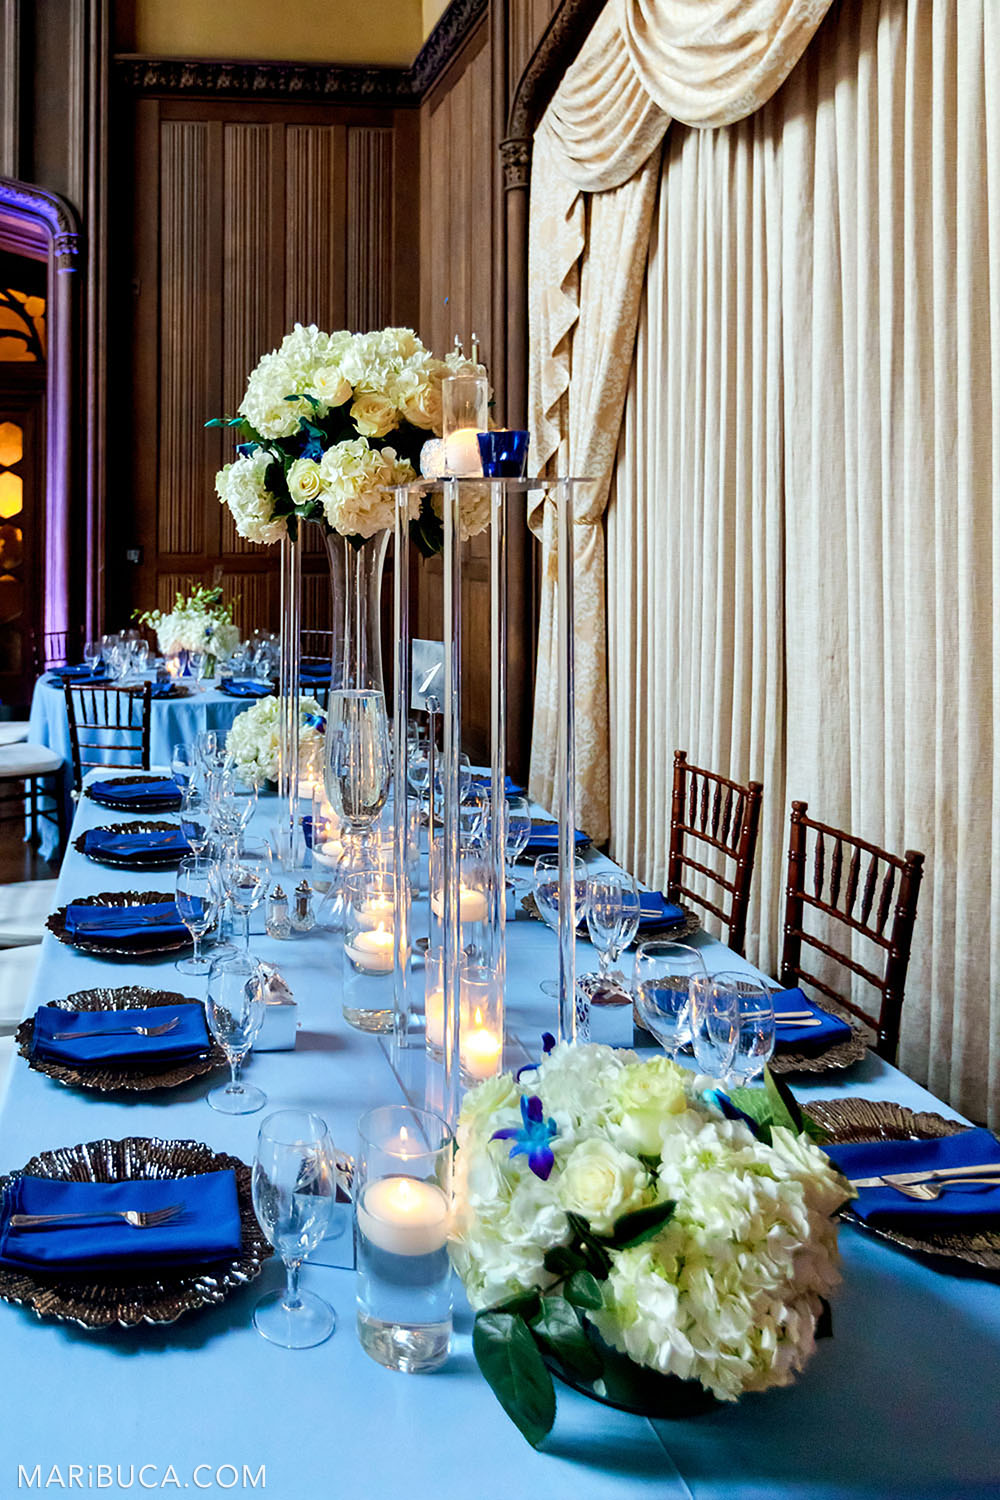 Wedding decoration blue theme: light blue tablecloths, blue towels for the guests, white bouquets with fresh flowers stay in the high glasses vases in the Great Hall, Kohl Mansion, Burlingame.